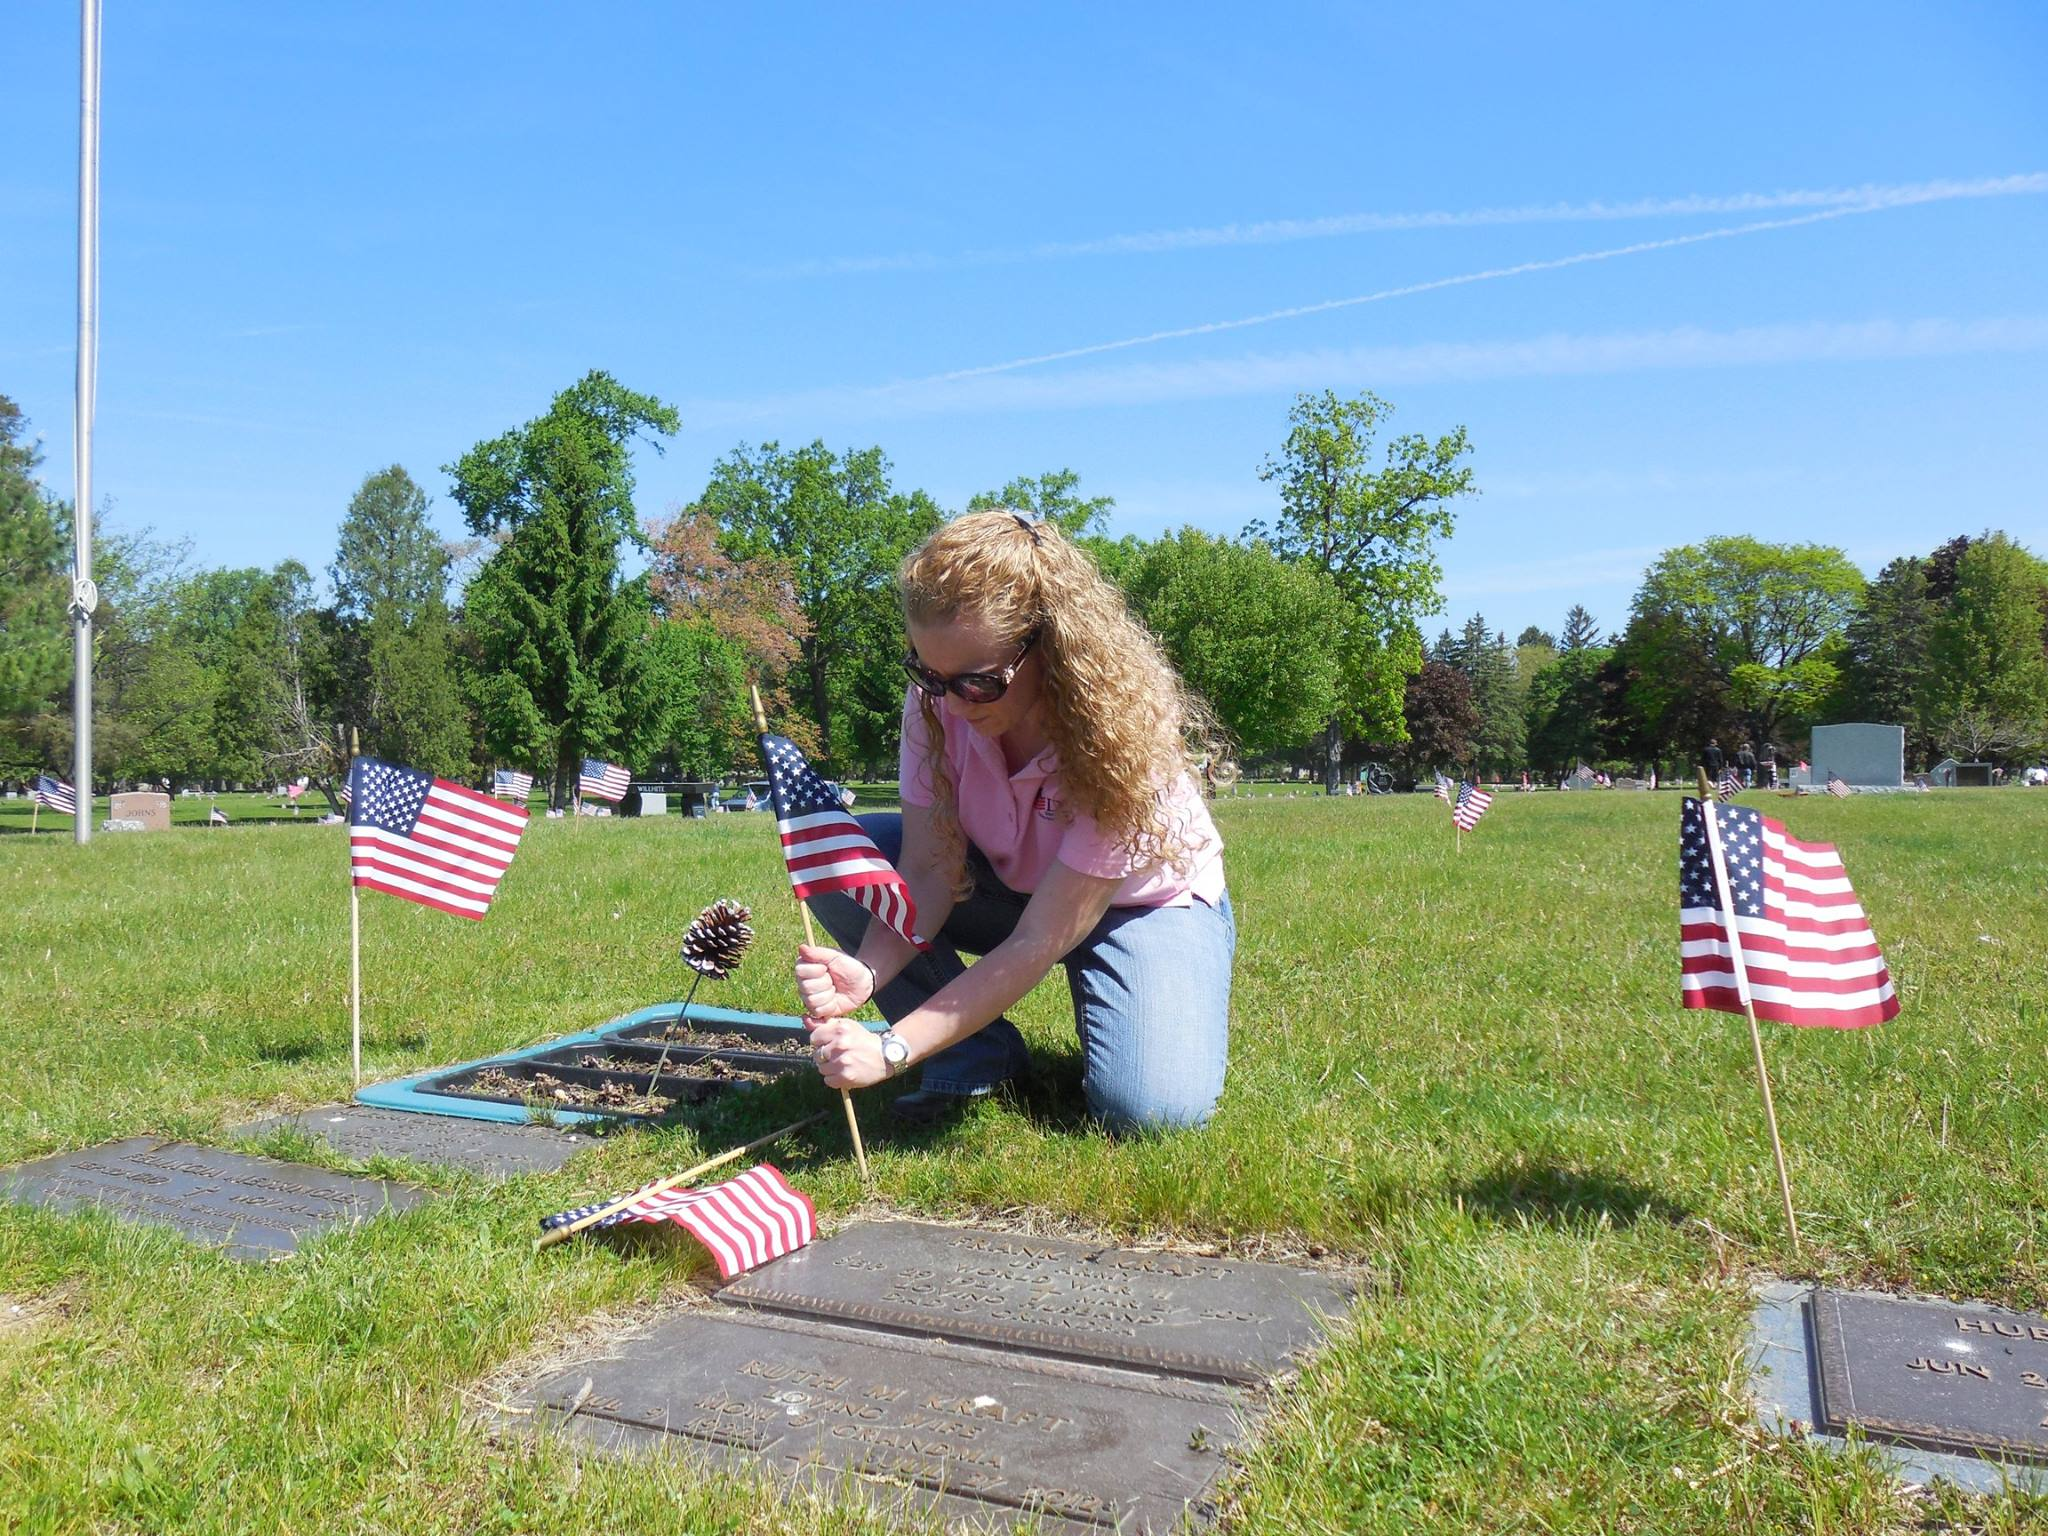 Cleaning military stones and placing flags for Memorial Day